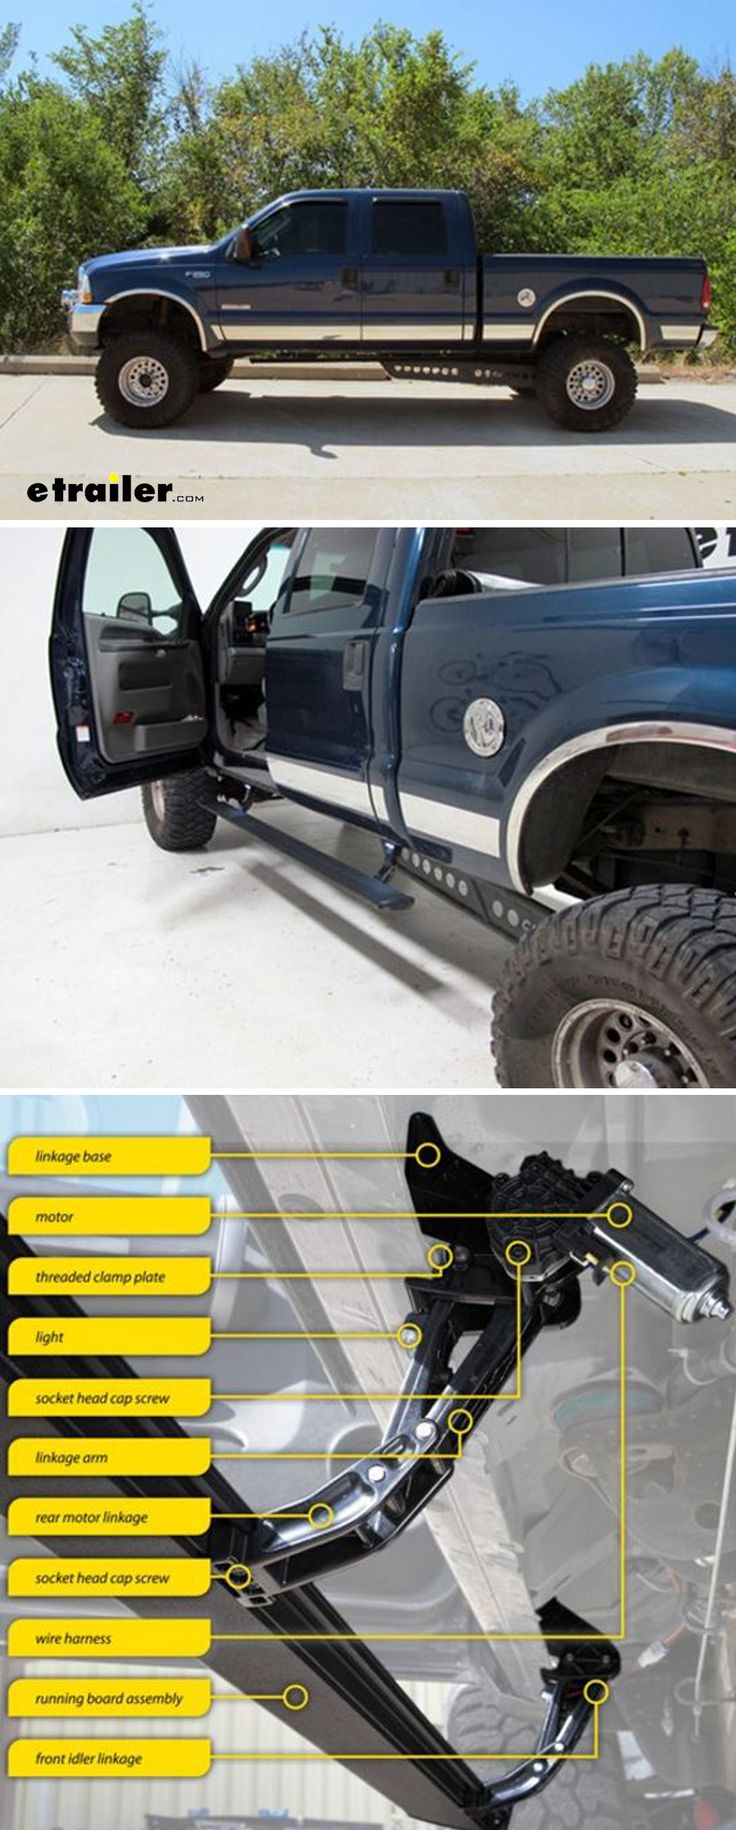 Bestop powerboard motorized running boards with led lights for your ford f 250 and f